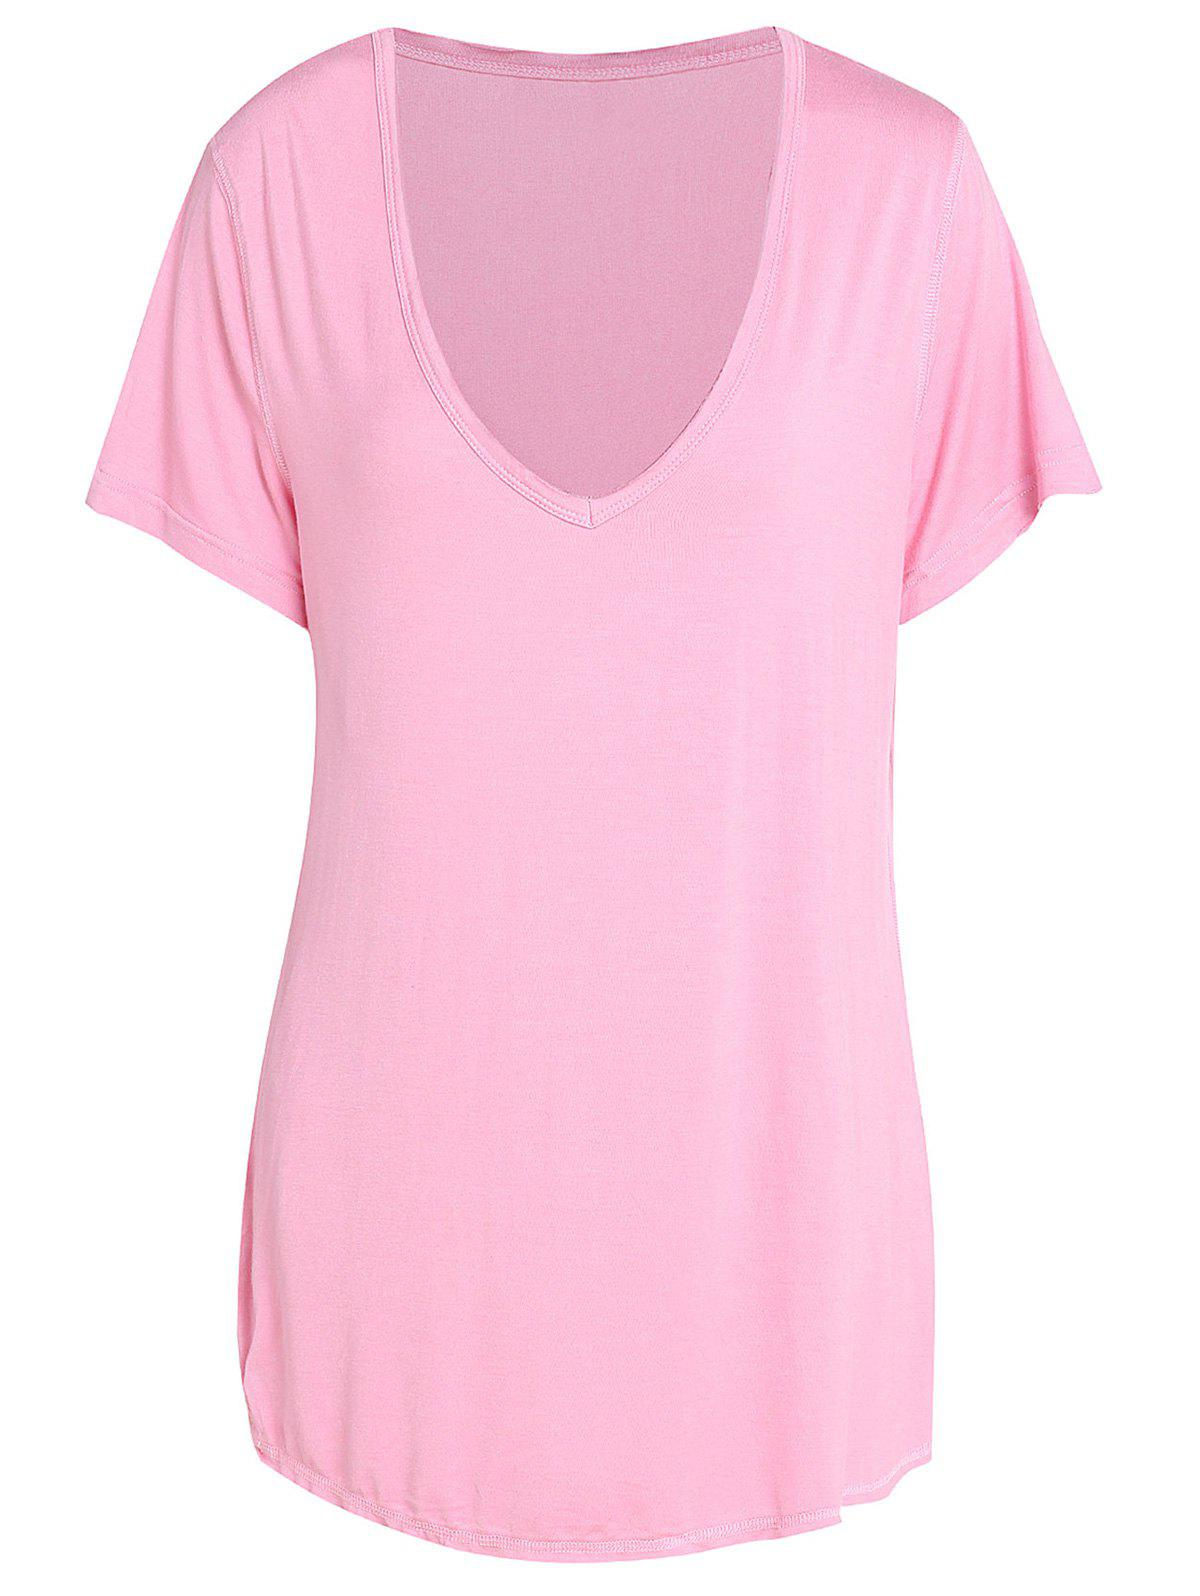 New Trendy Pure Color V-Neck Short Sleeve T-Shirt For Women